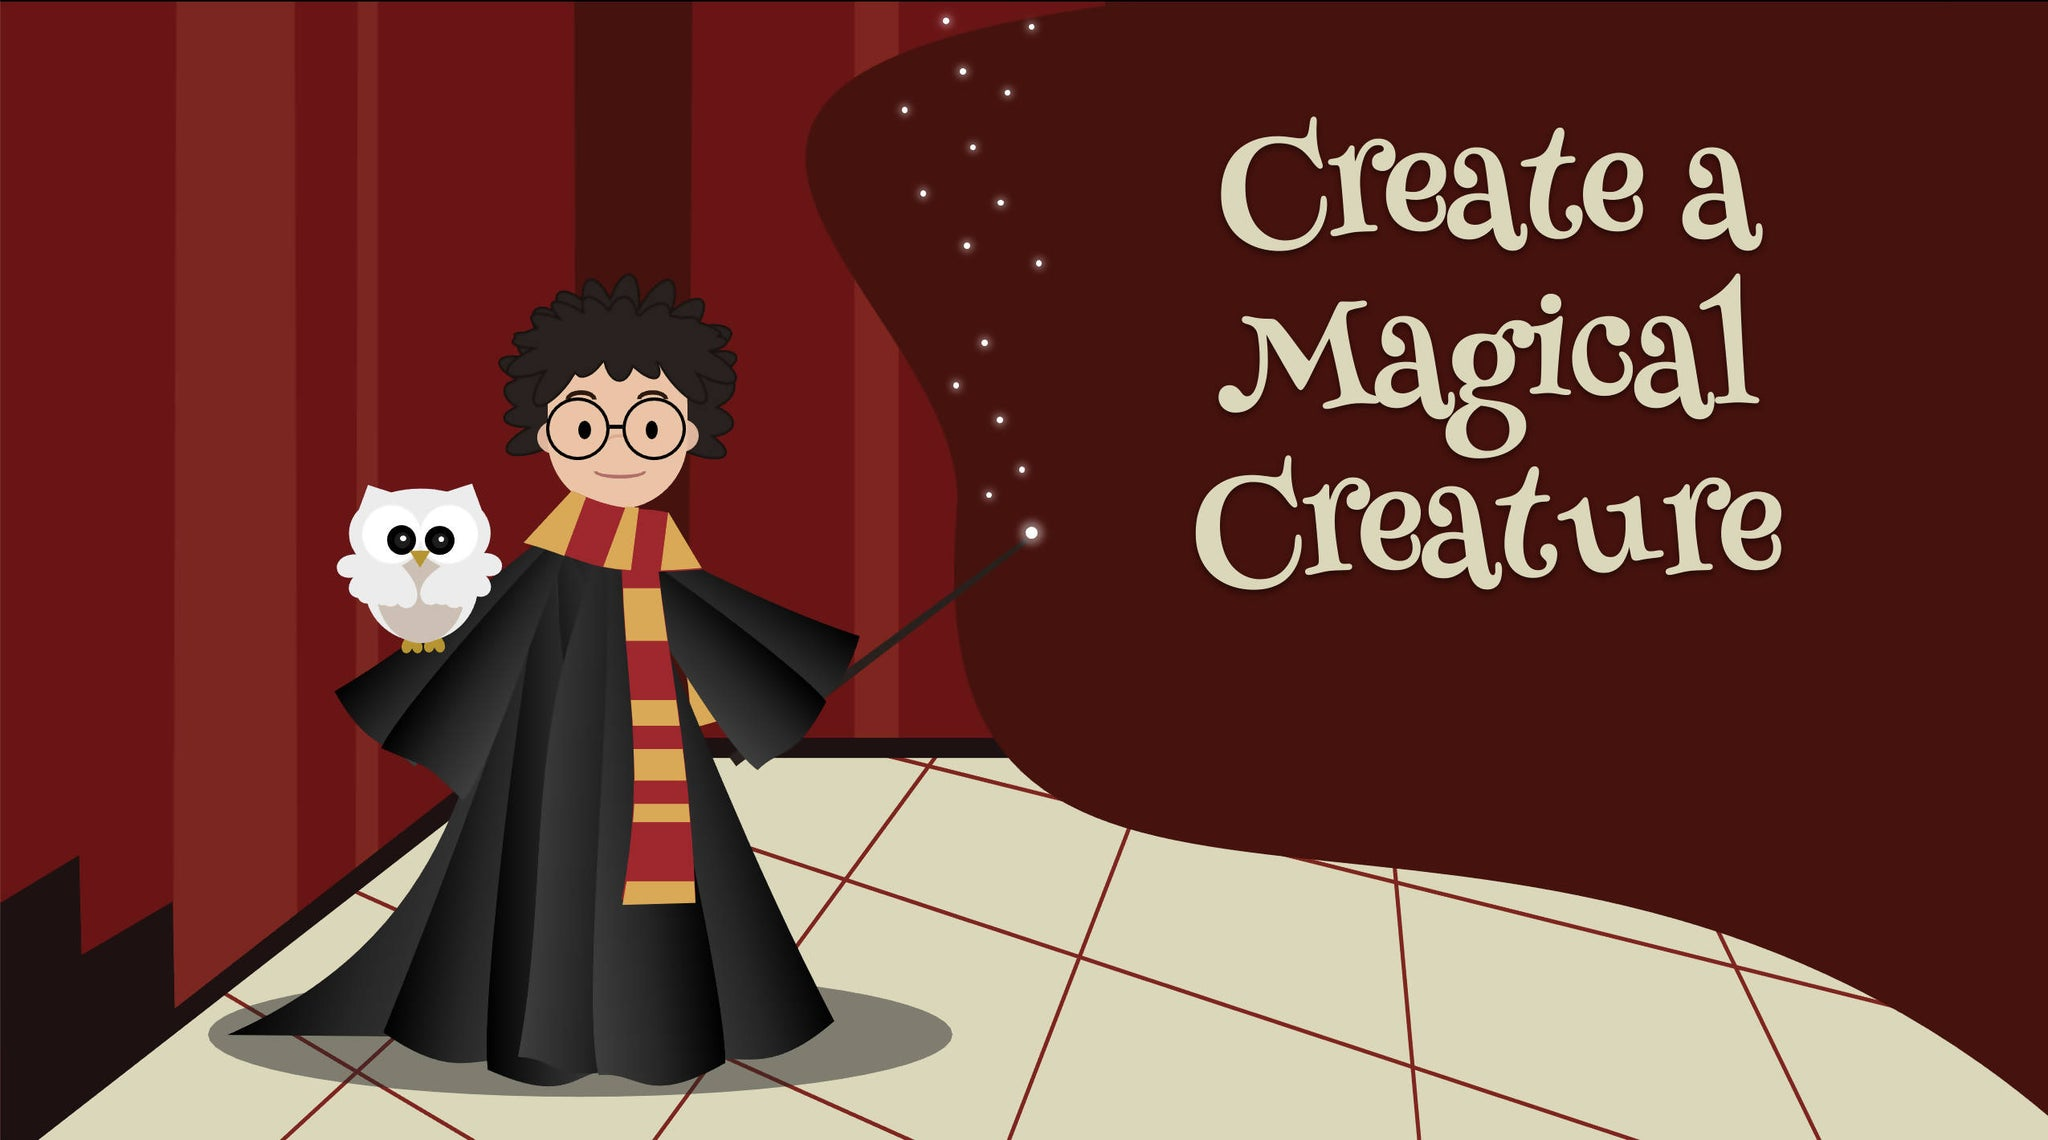 Harry Potter Creative Writing: Create a Magical Creature (7-12 years)